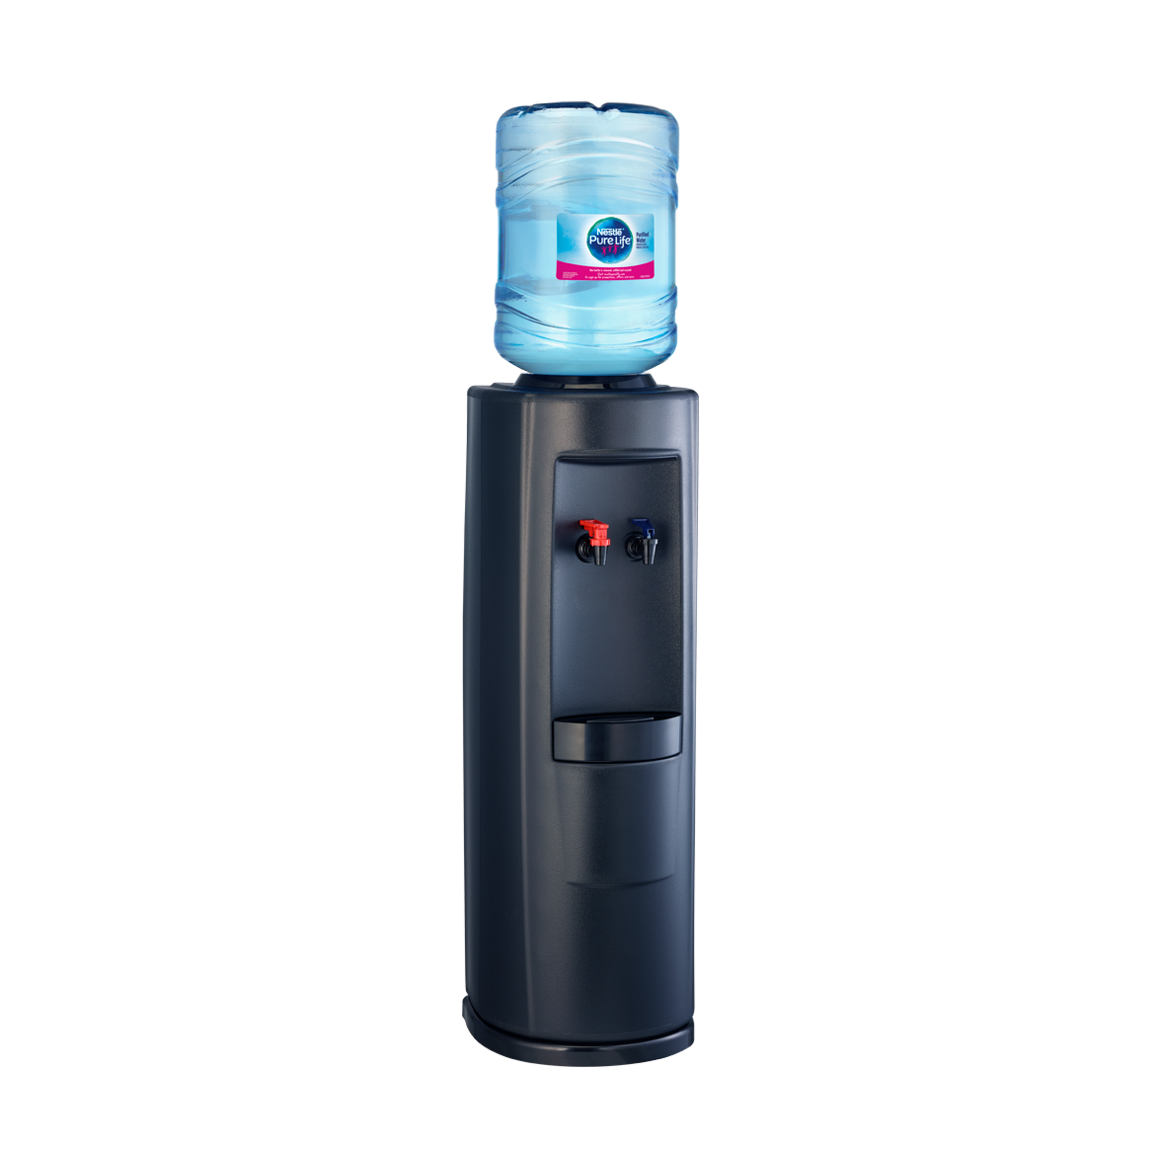 Hot & Cold Water Dispenser (No Spill) Image2